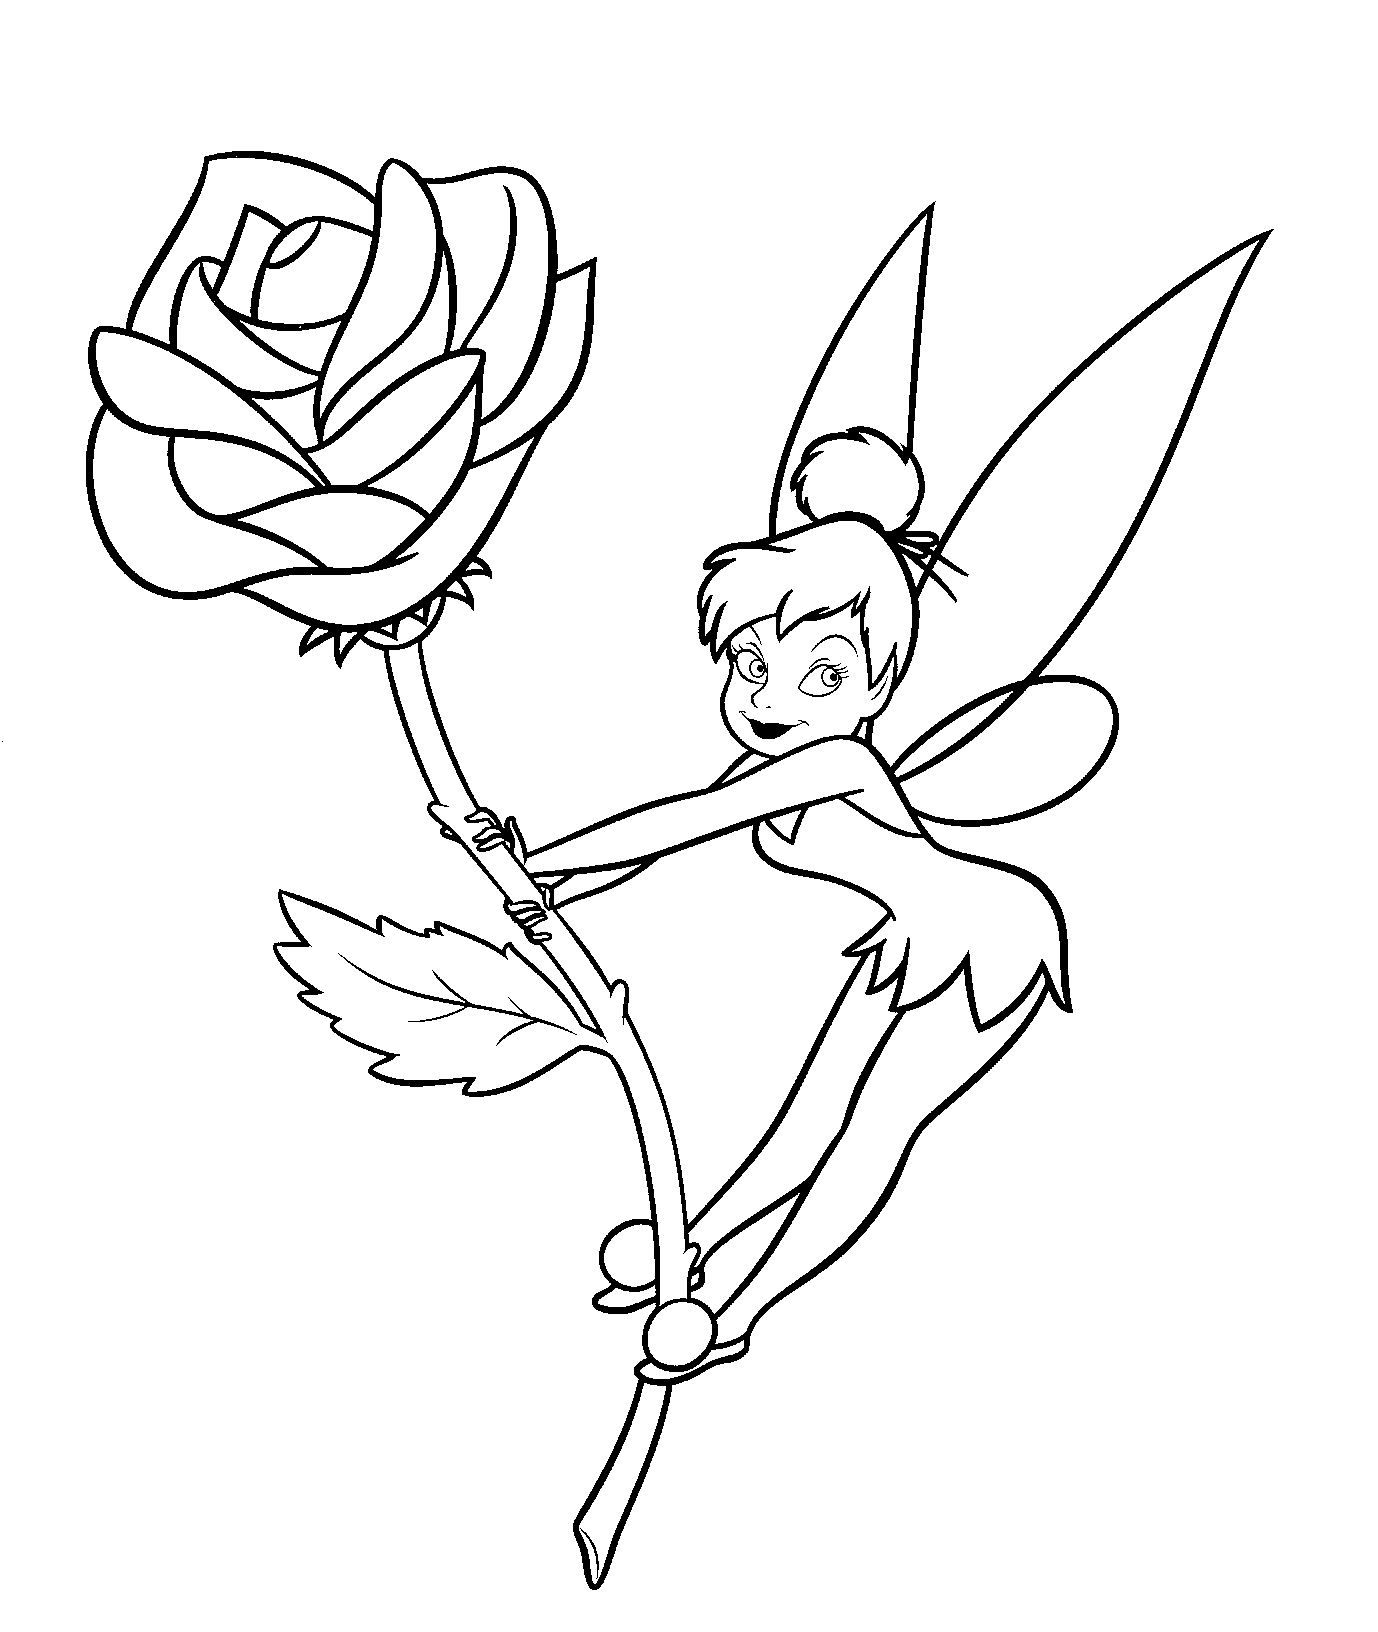 Tinkerbell Coloring Pages | TinkerBell Coloring Pages | Pinterest ...